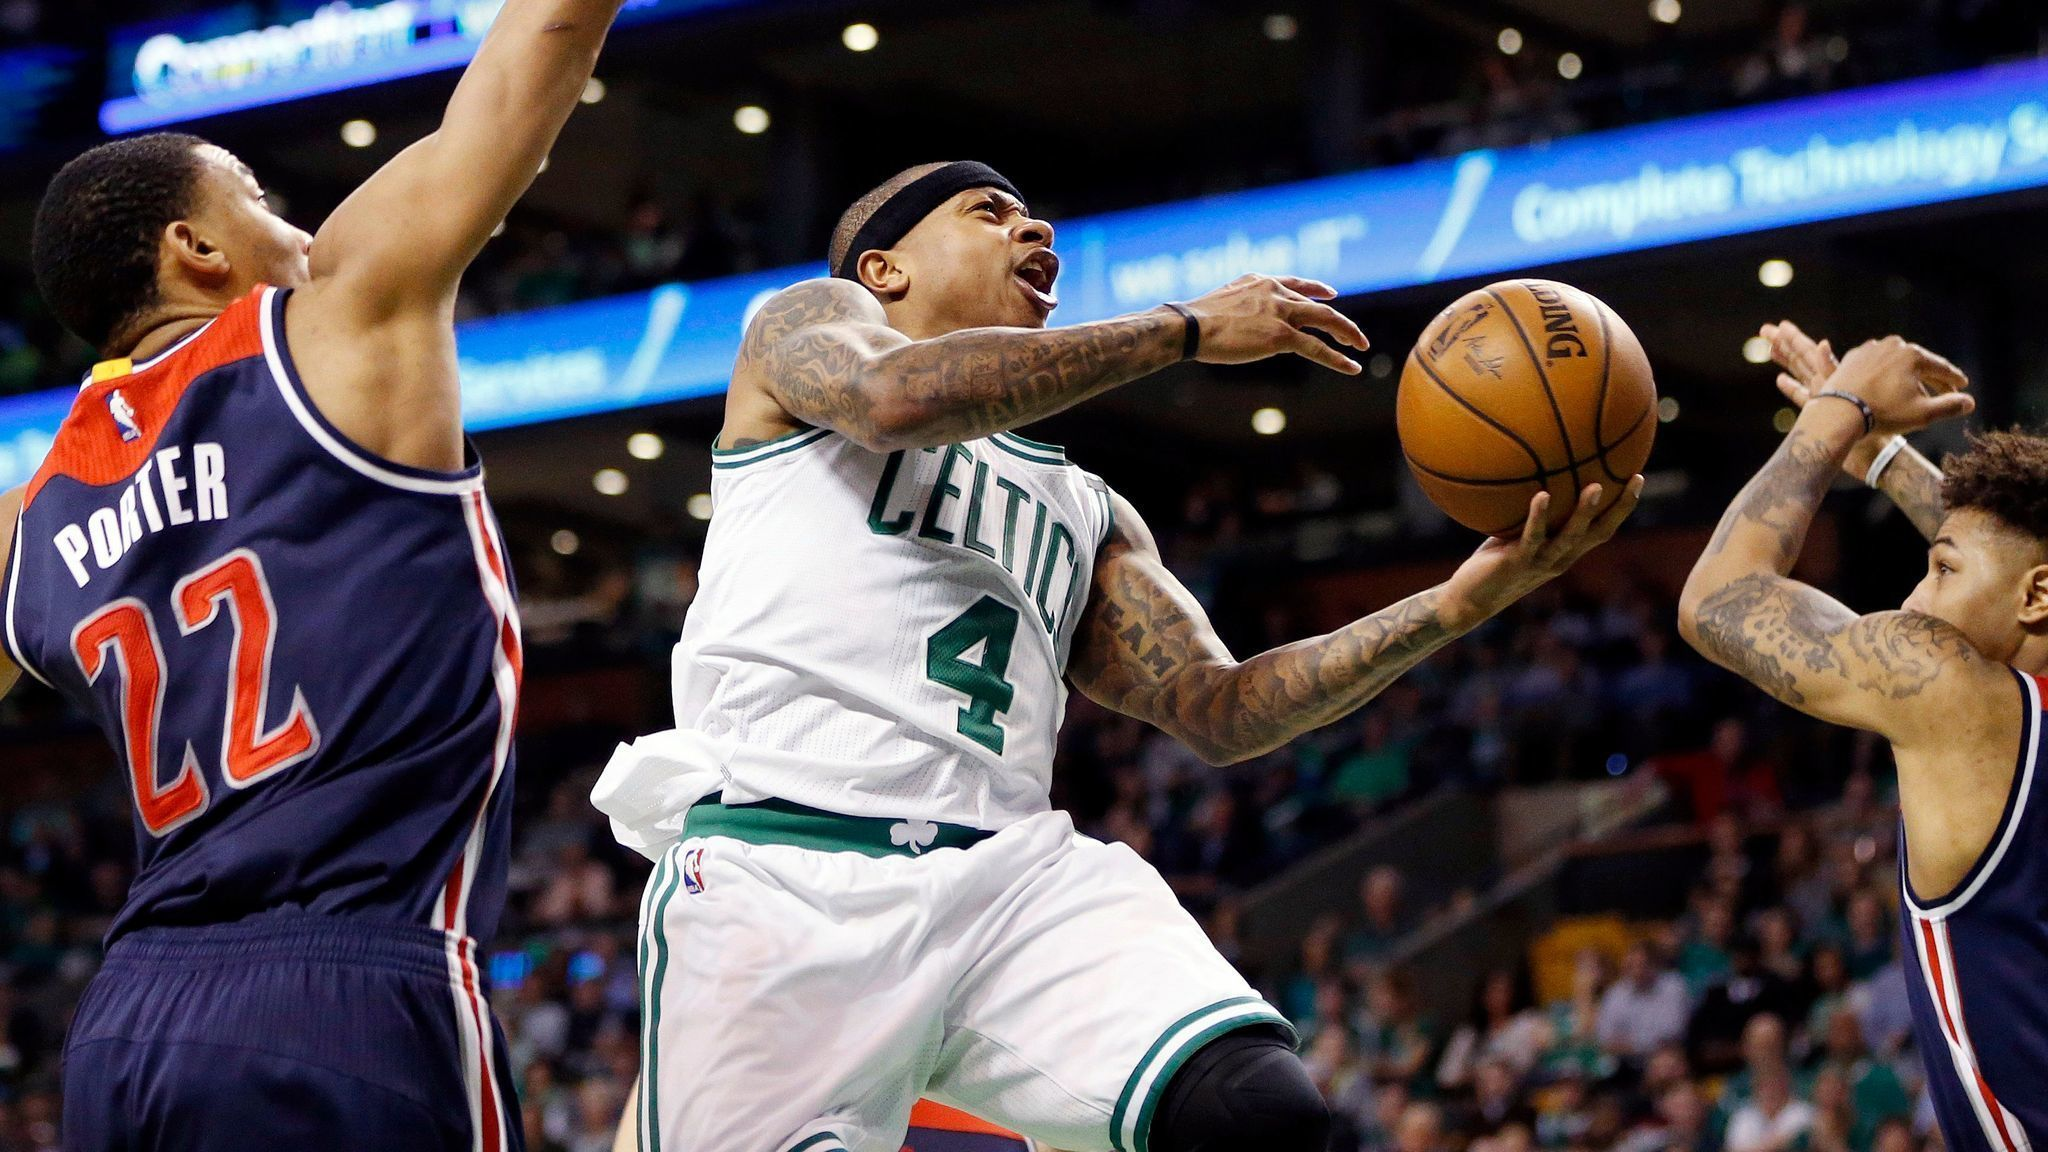 27c9b29b811 pressherald.com Isaiah Thomas leads Celtics to series-opening win over  Wizards a day after attending sister s funeral